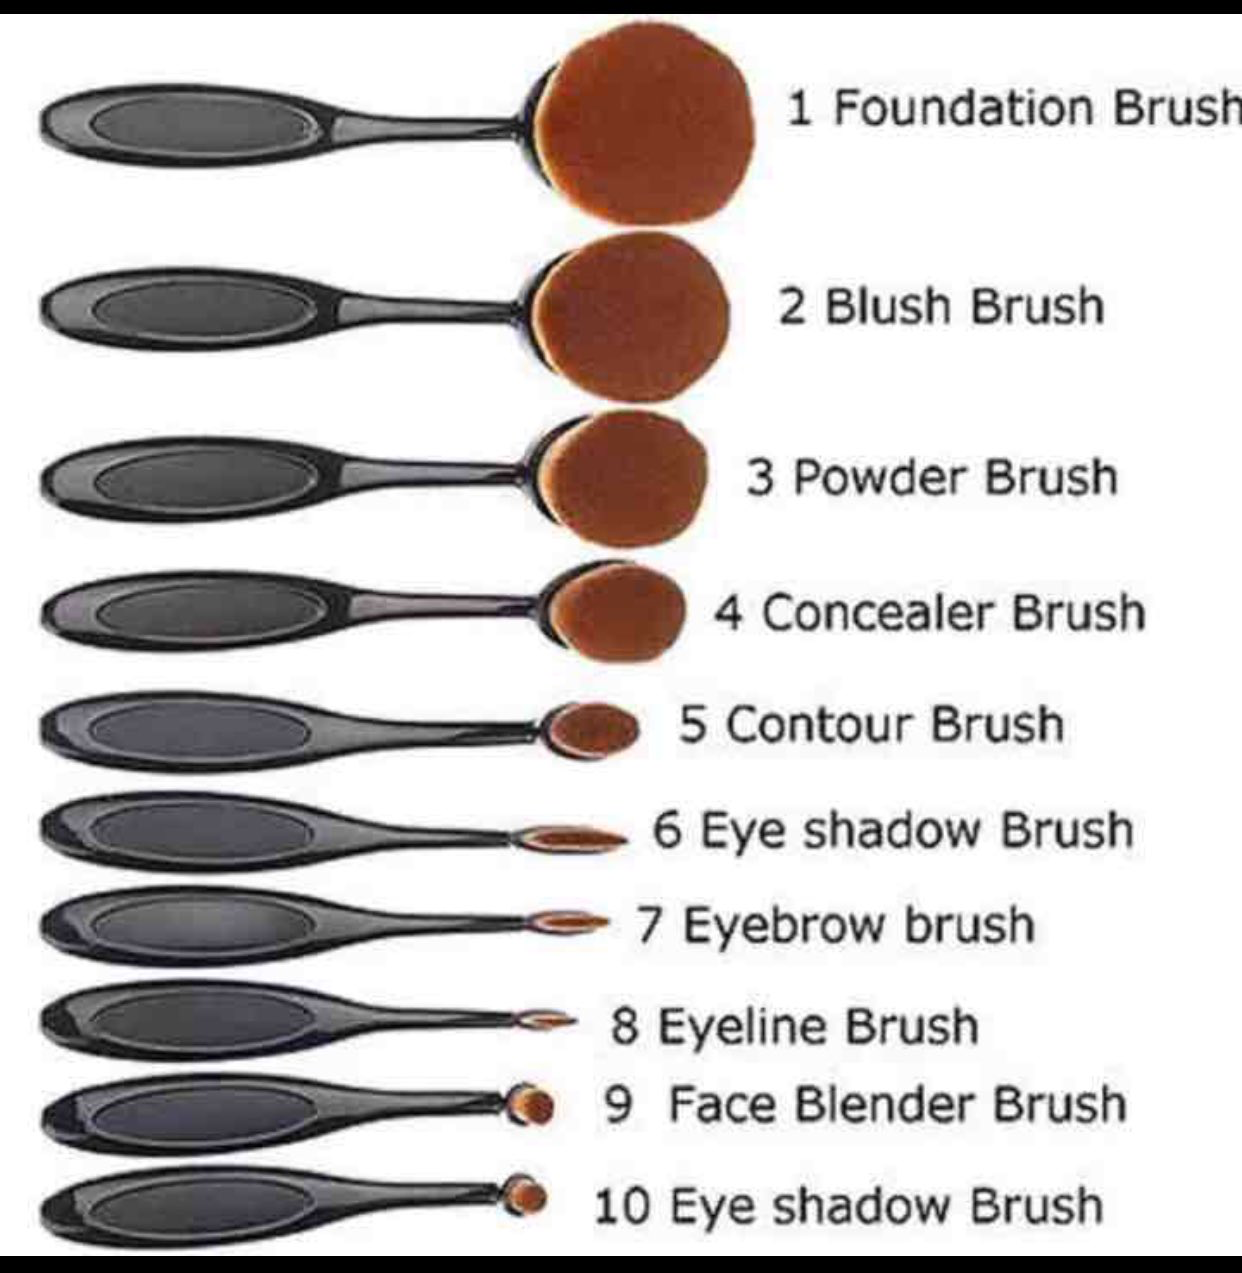 Oval Brush Guide